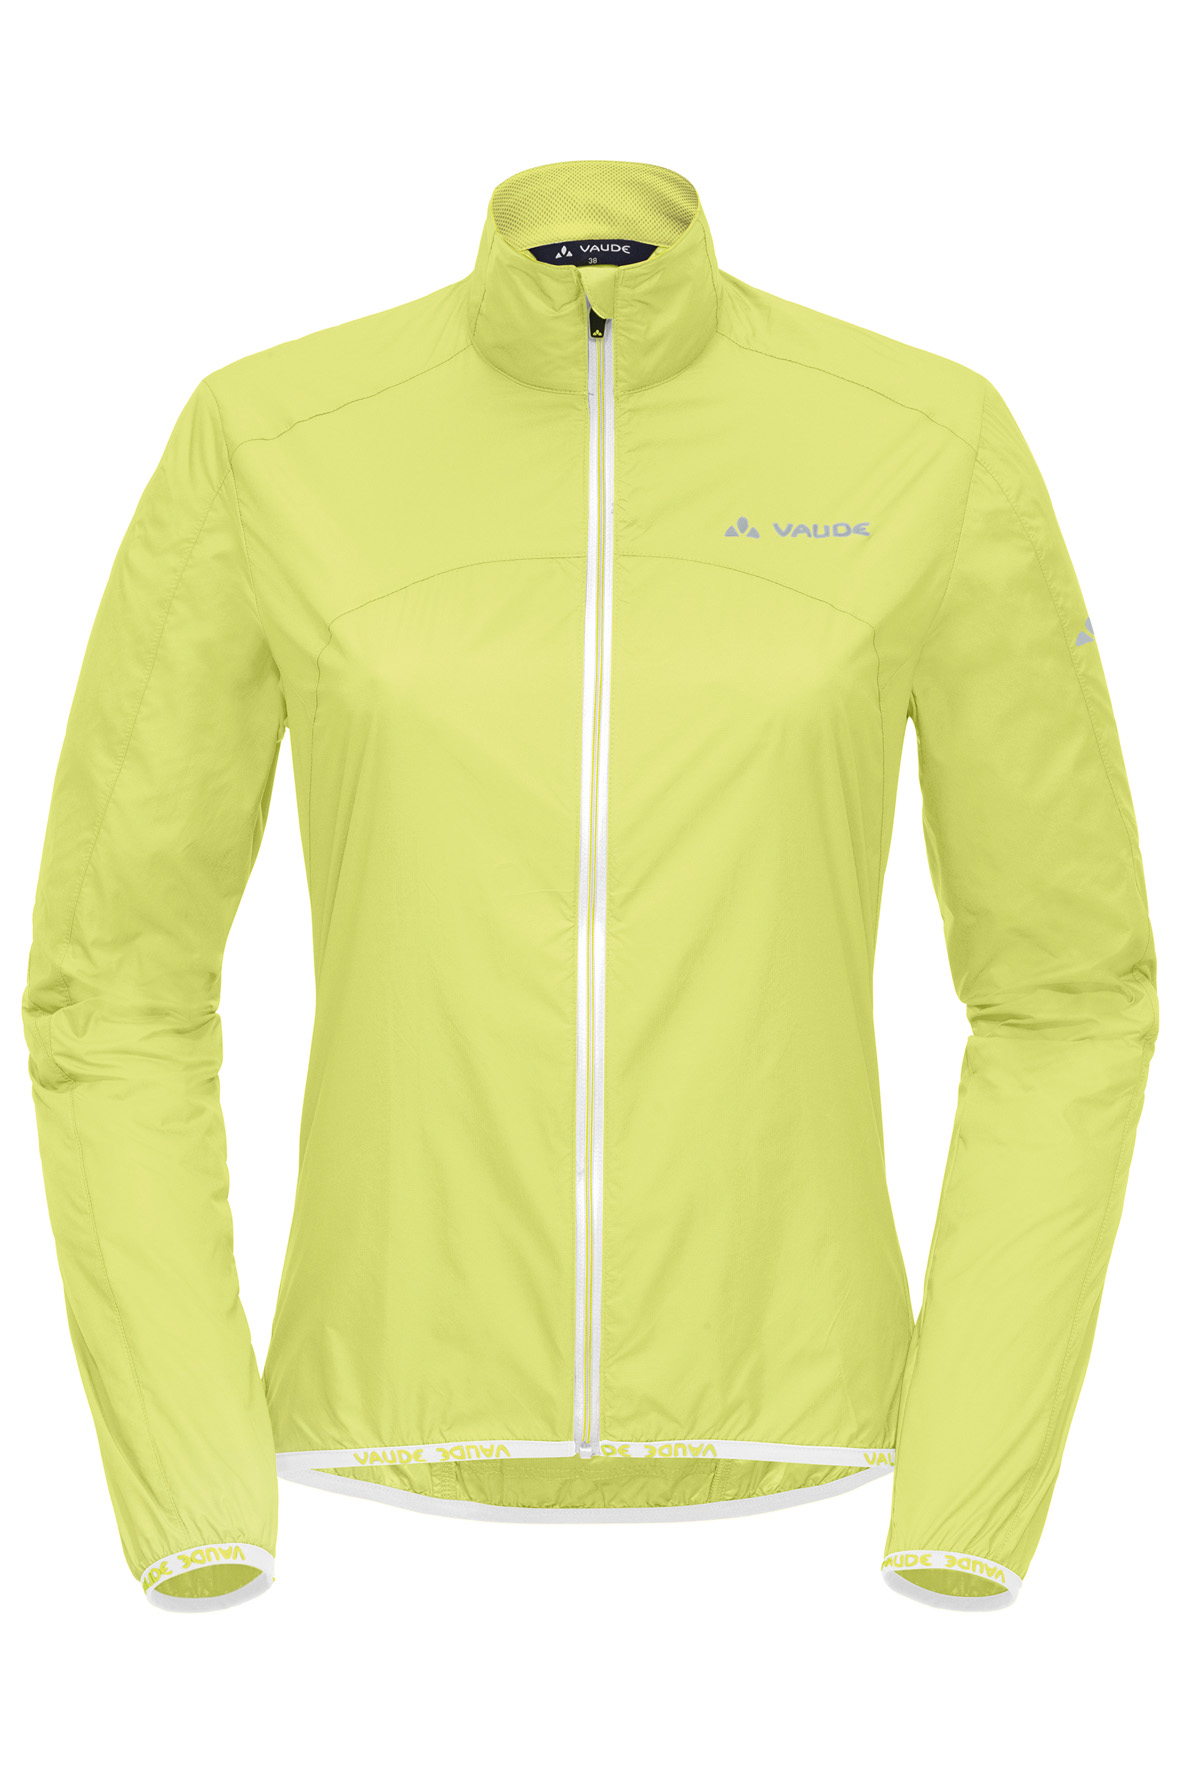 Women´s Air Jacket II soft yellow Größe 34 - schneider-sports